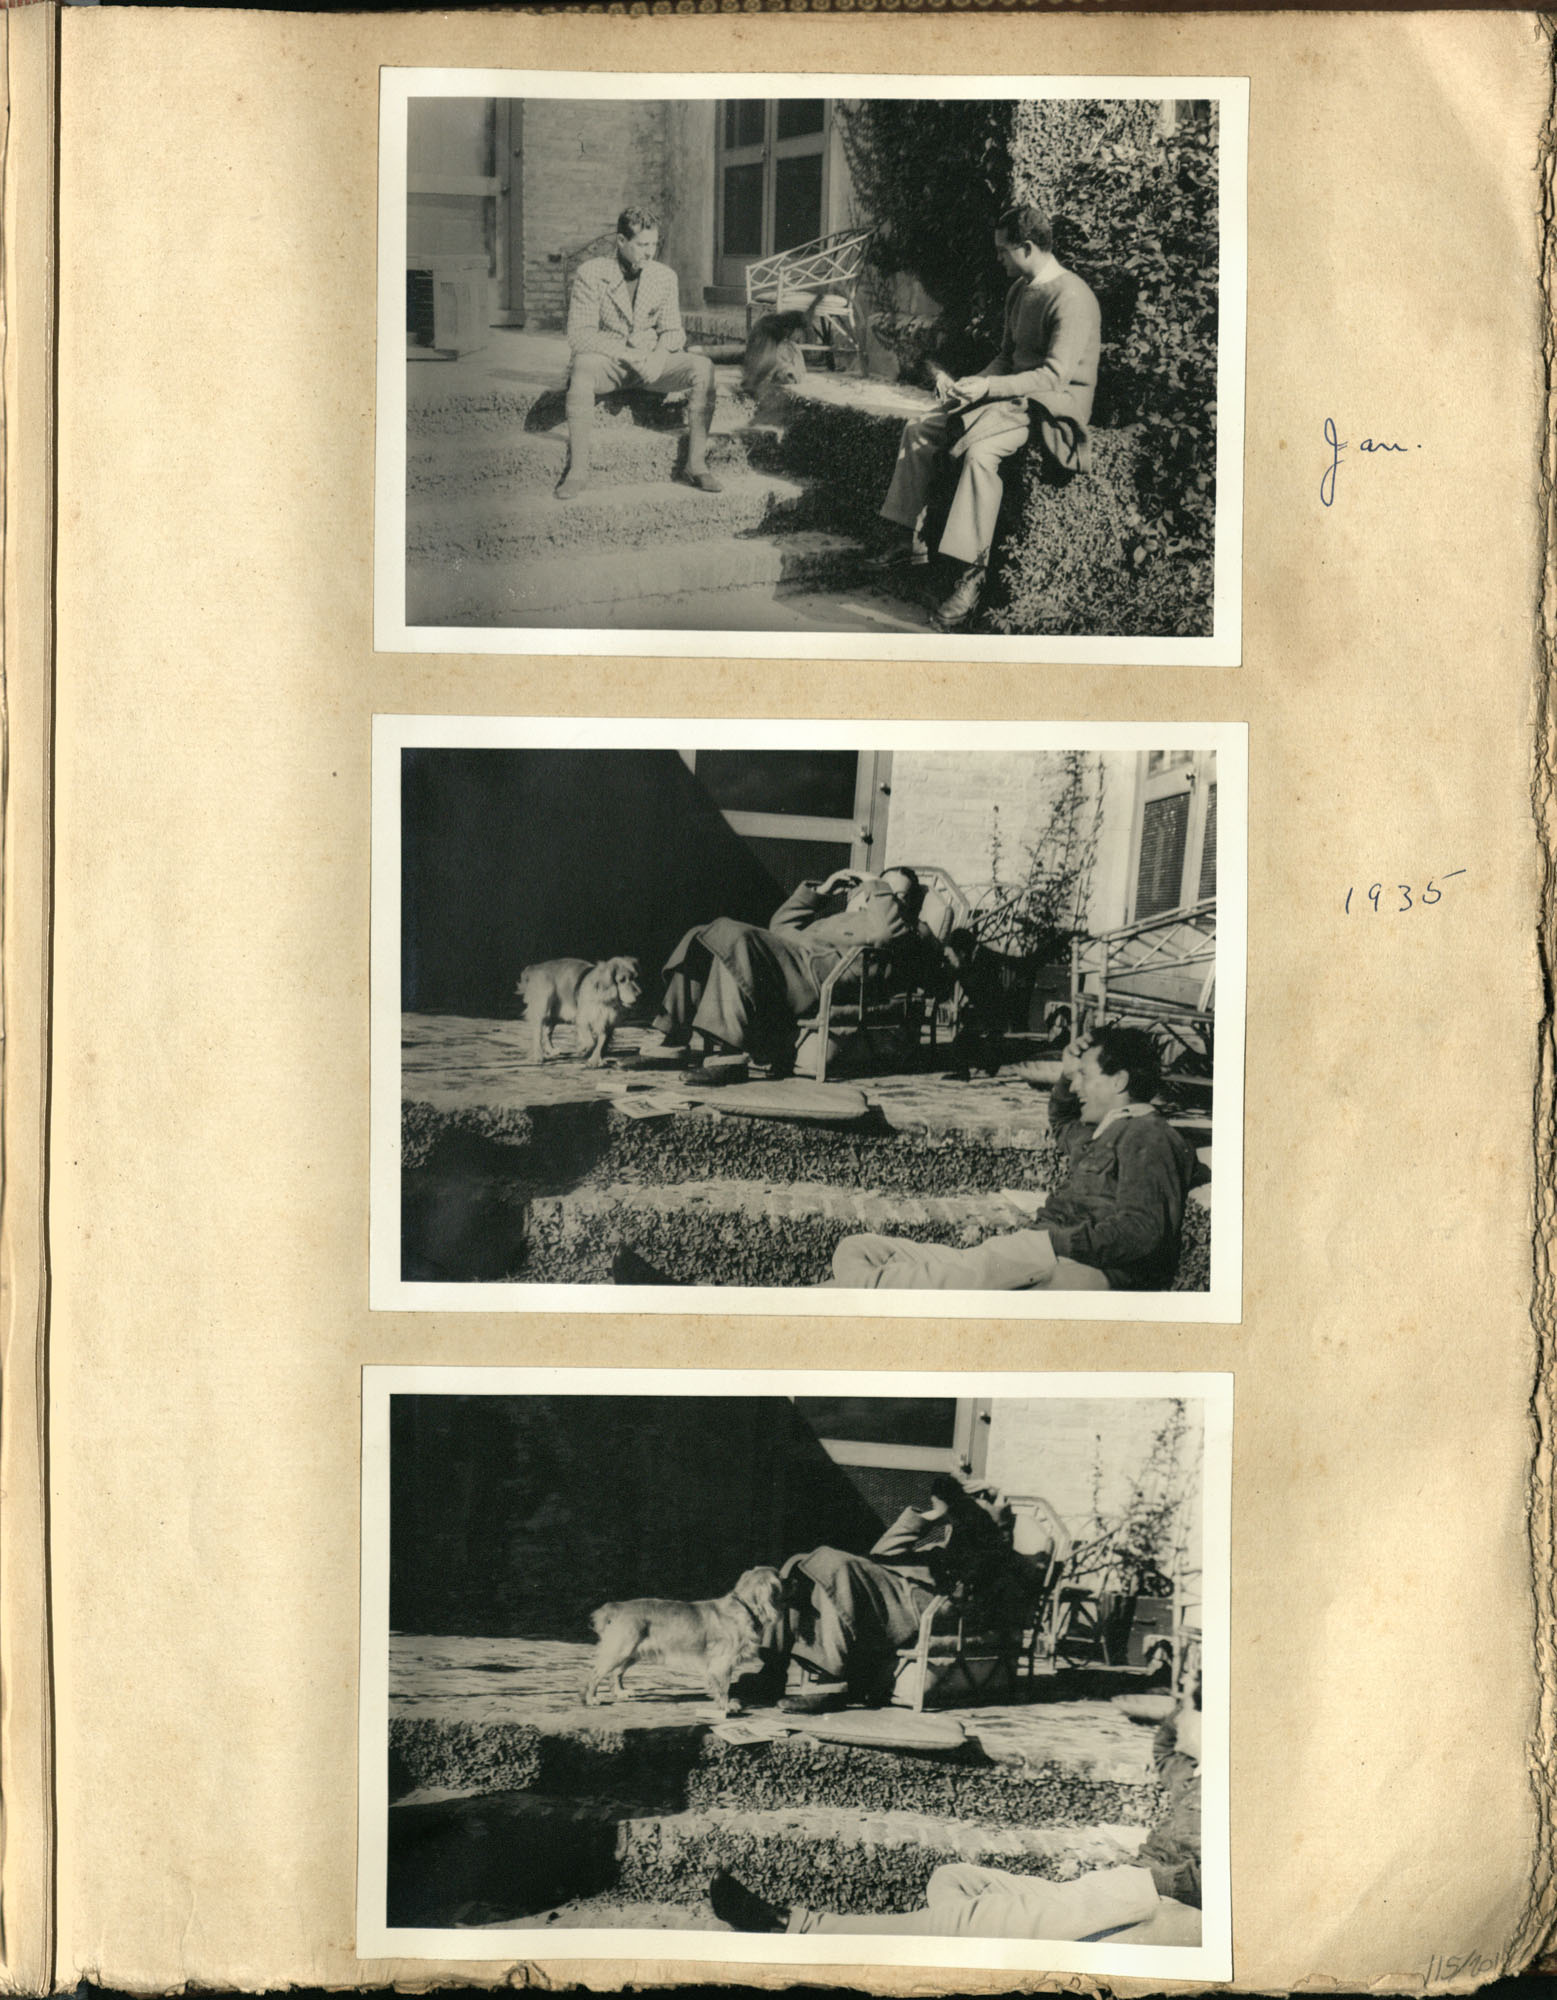 Early Medway and travels album, 1929-1937, page 115